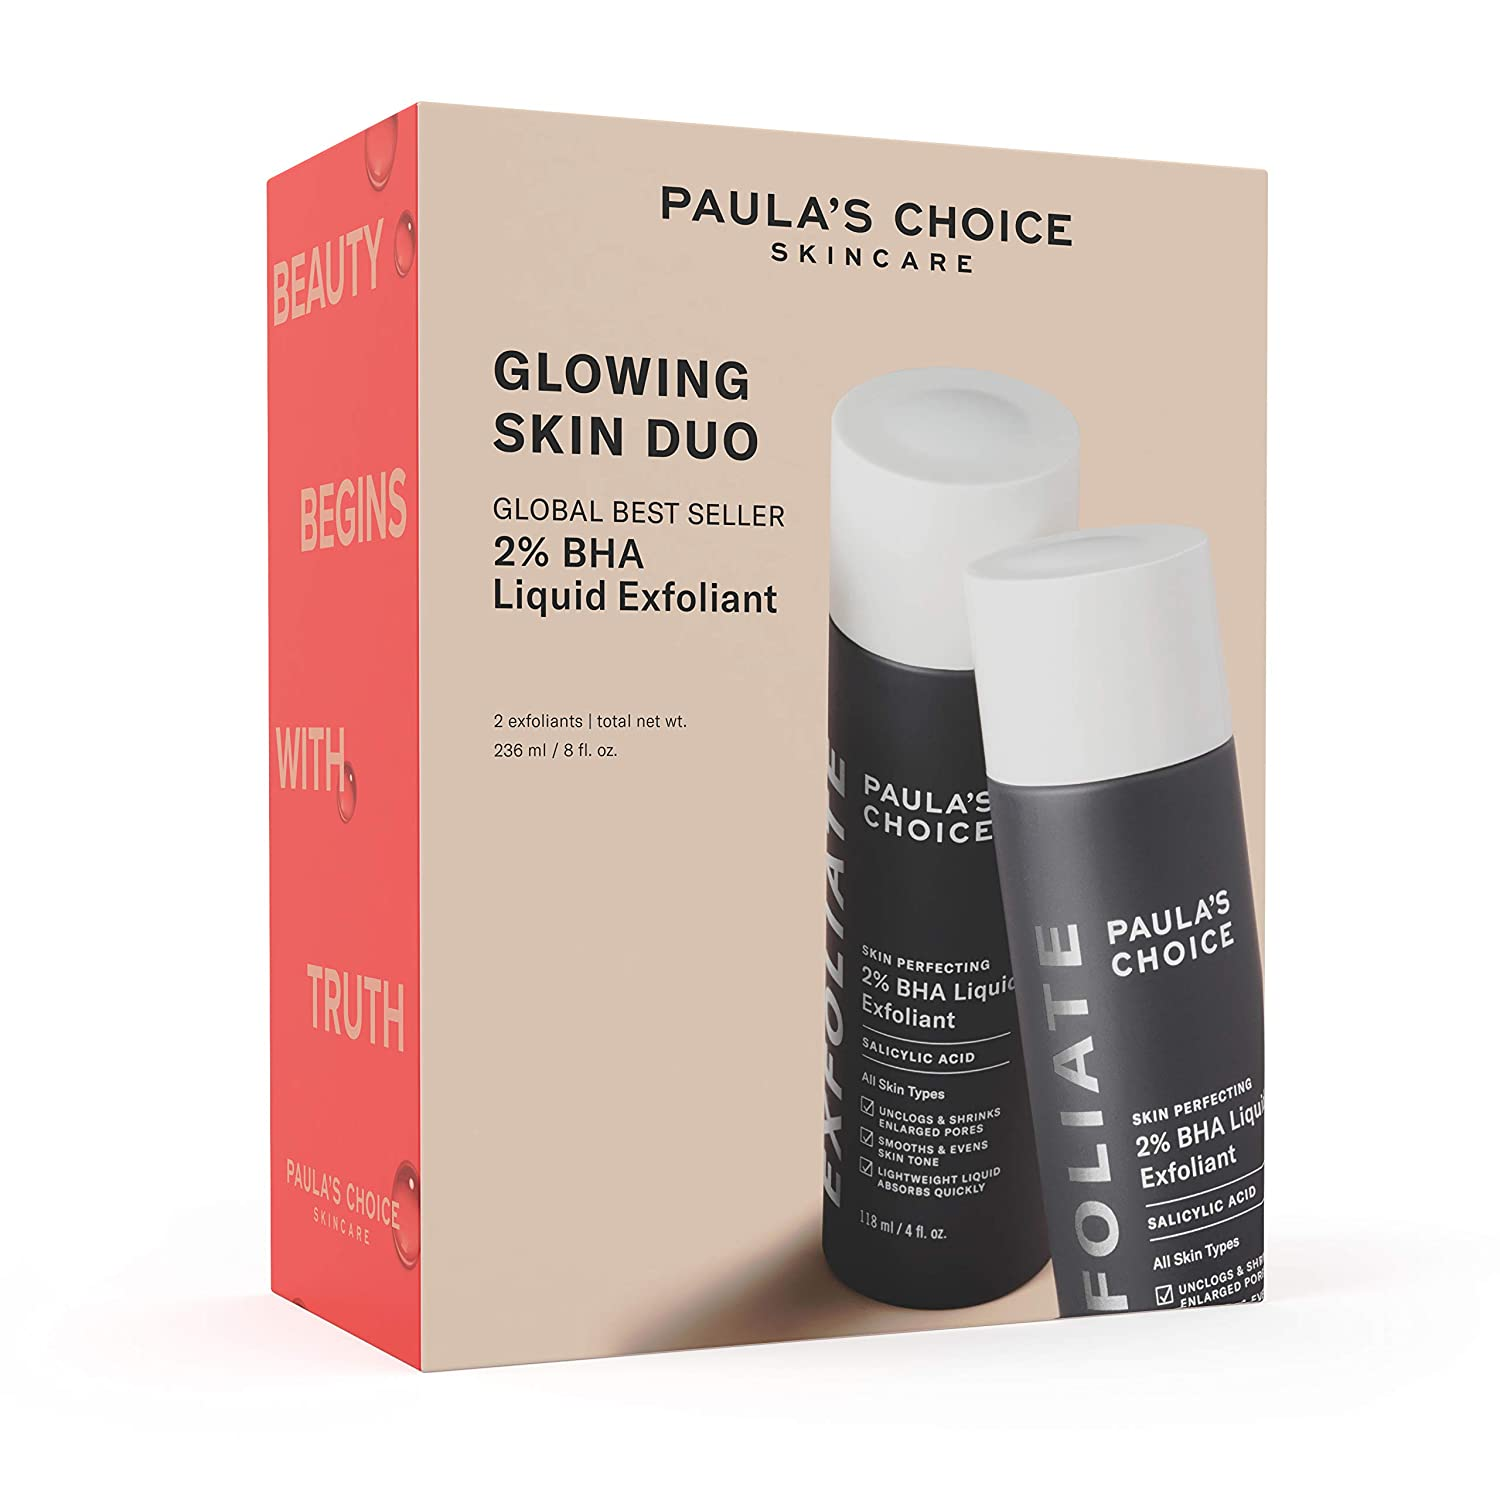 Paula's Choice Limited Edition Glowing Skin Duo - Skin Perfecting 2% BHA Liquid Salicylic Acid Facial Exfoliant Gift Set for Blackheads, Large Pores & Wrinkles - Kit Includes 2 Full Size Bottles